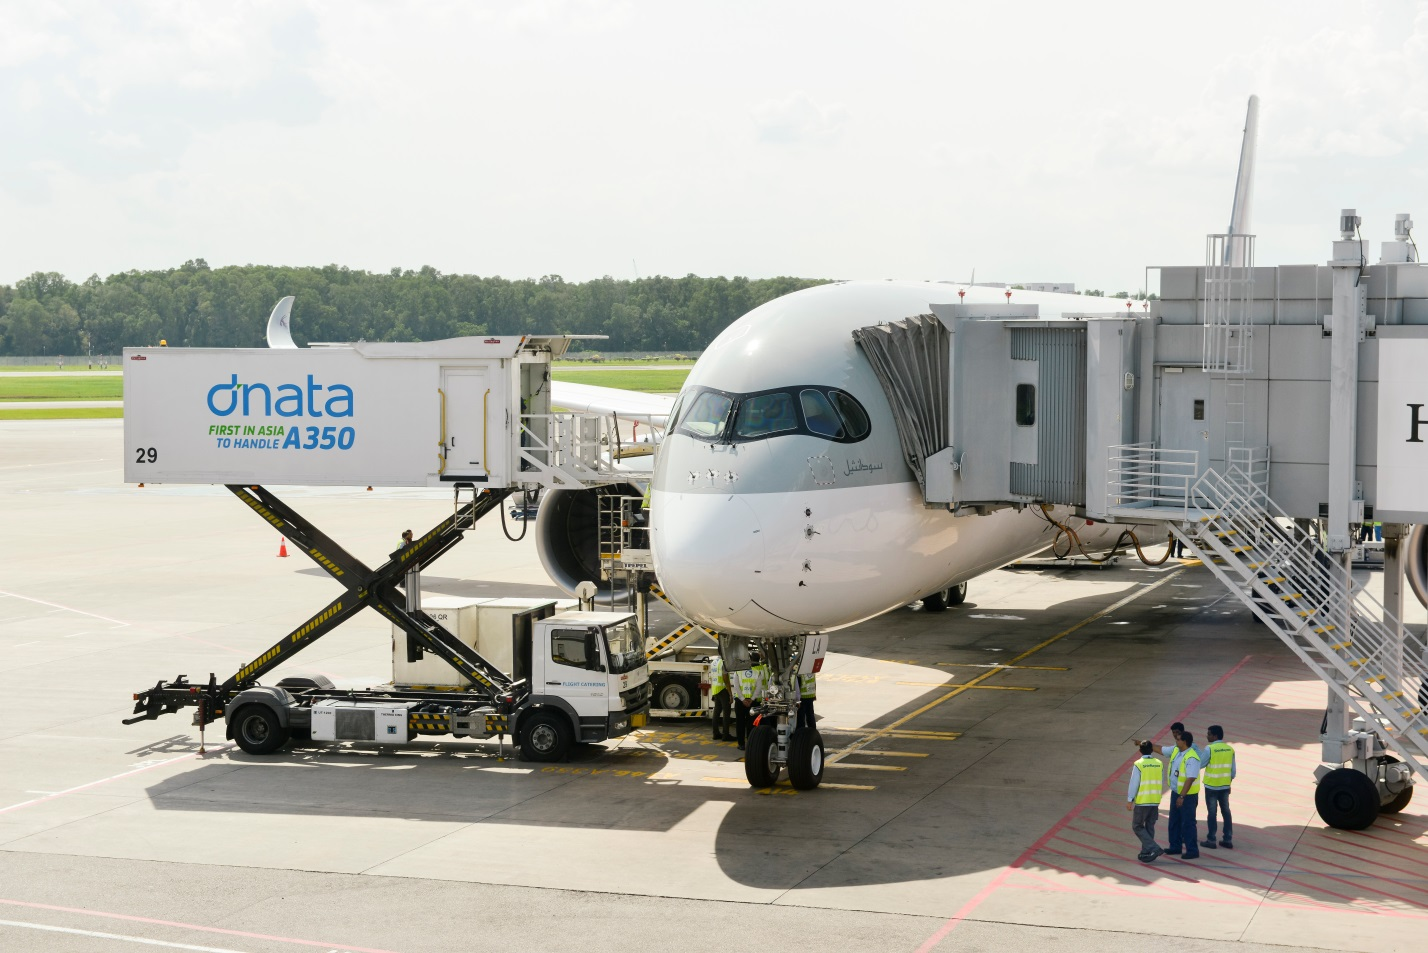 dnata welcomes the first A350-XWB at Changi Airport